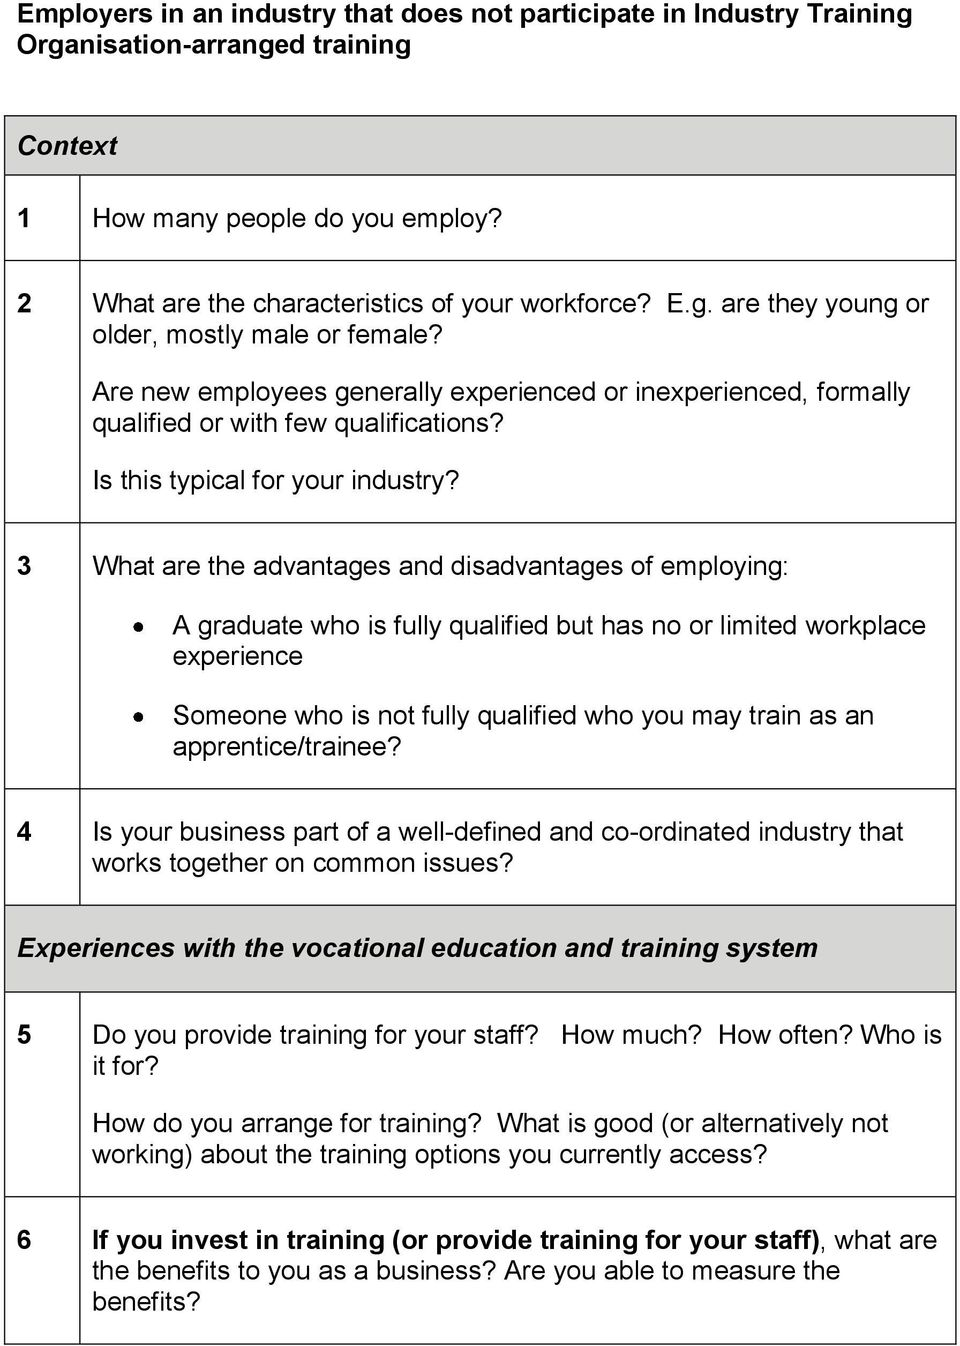 3 What are the advantages and disadvantages of employing: A graduate who is fully qualified but has no or limited workplace experience Someone who is not fully qualified who you may train as an